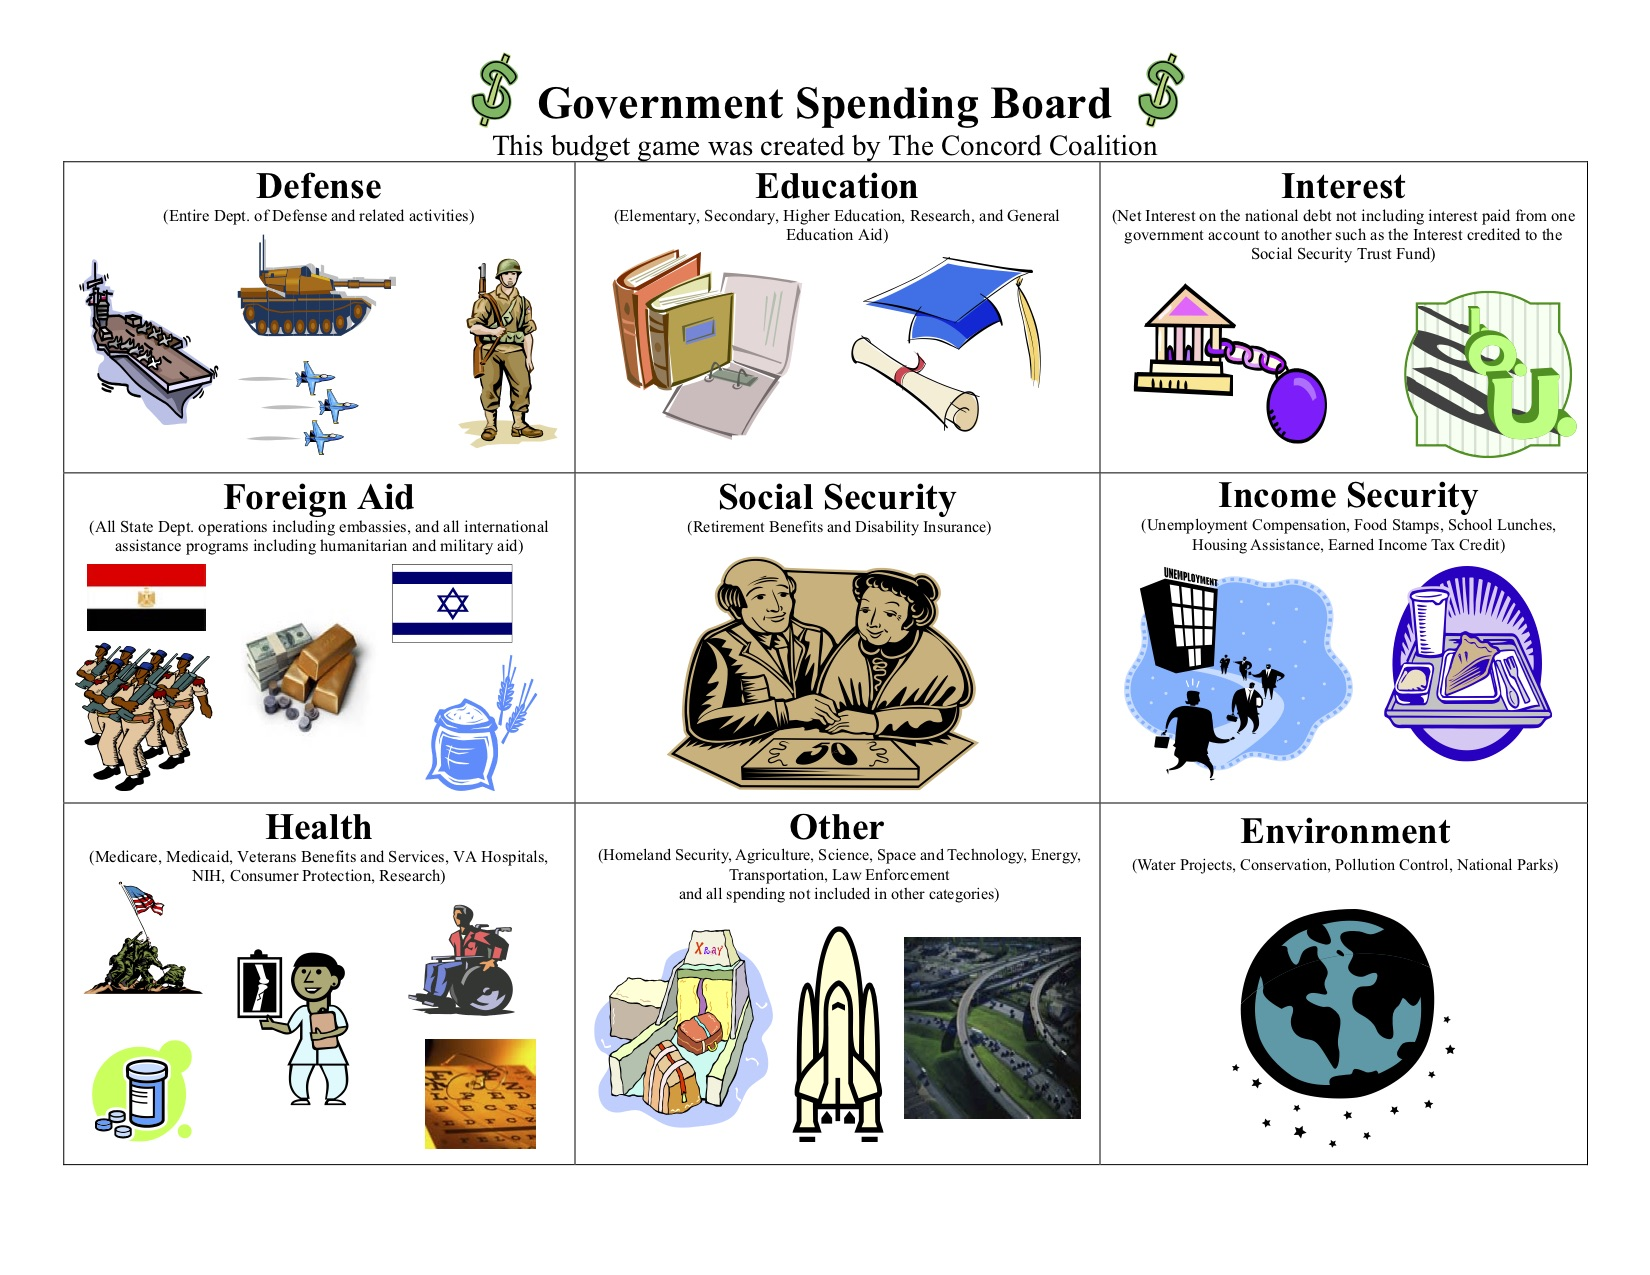 spending program game board